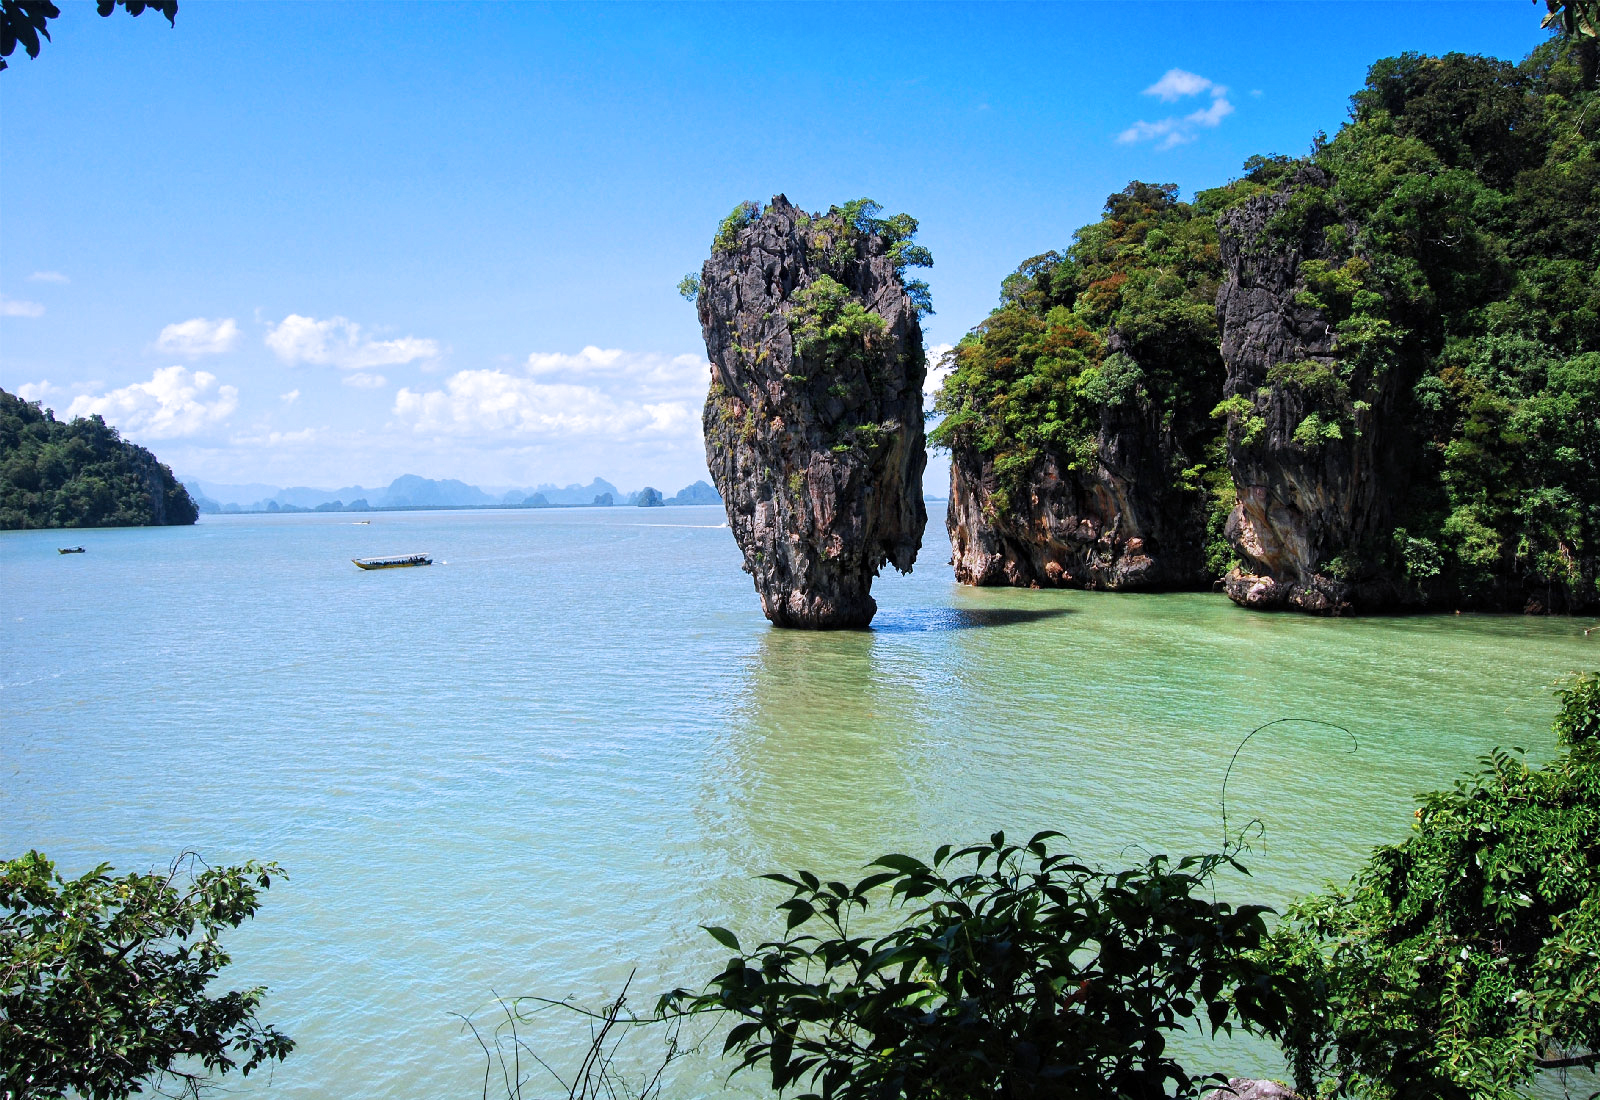 James Bond Island Sightseeing Tour from Krabi by Longtail Boat with Kayaking Option